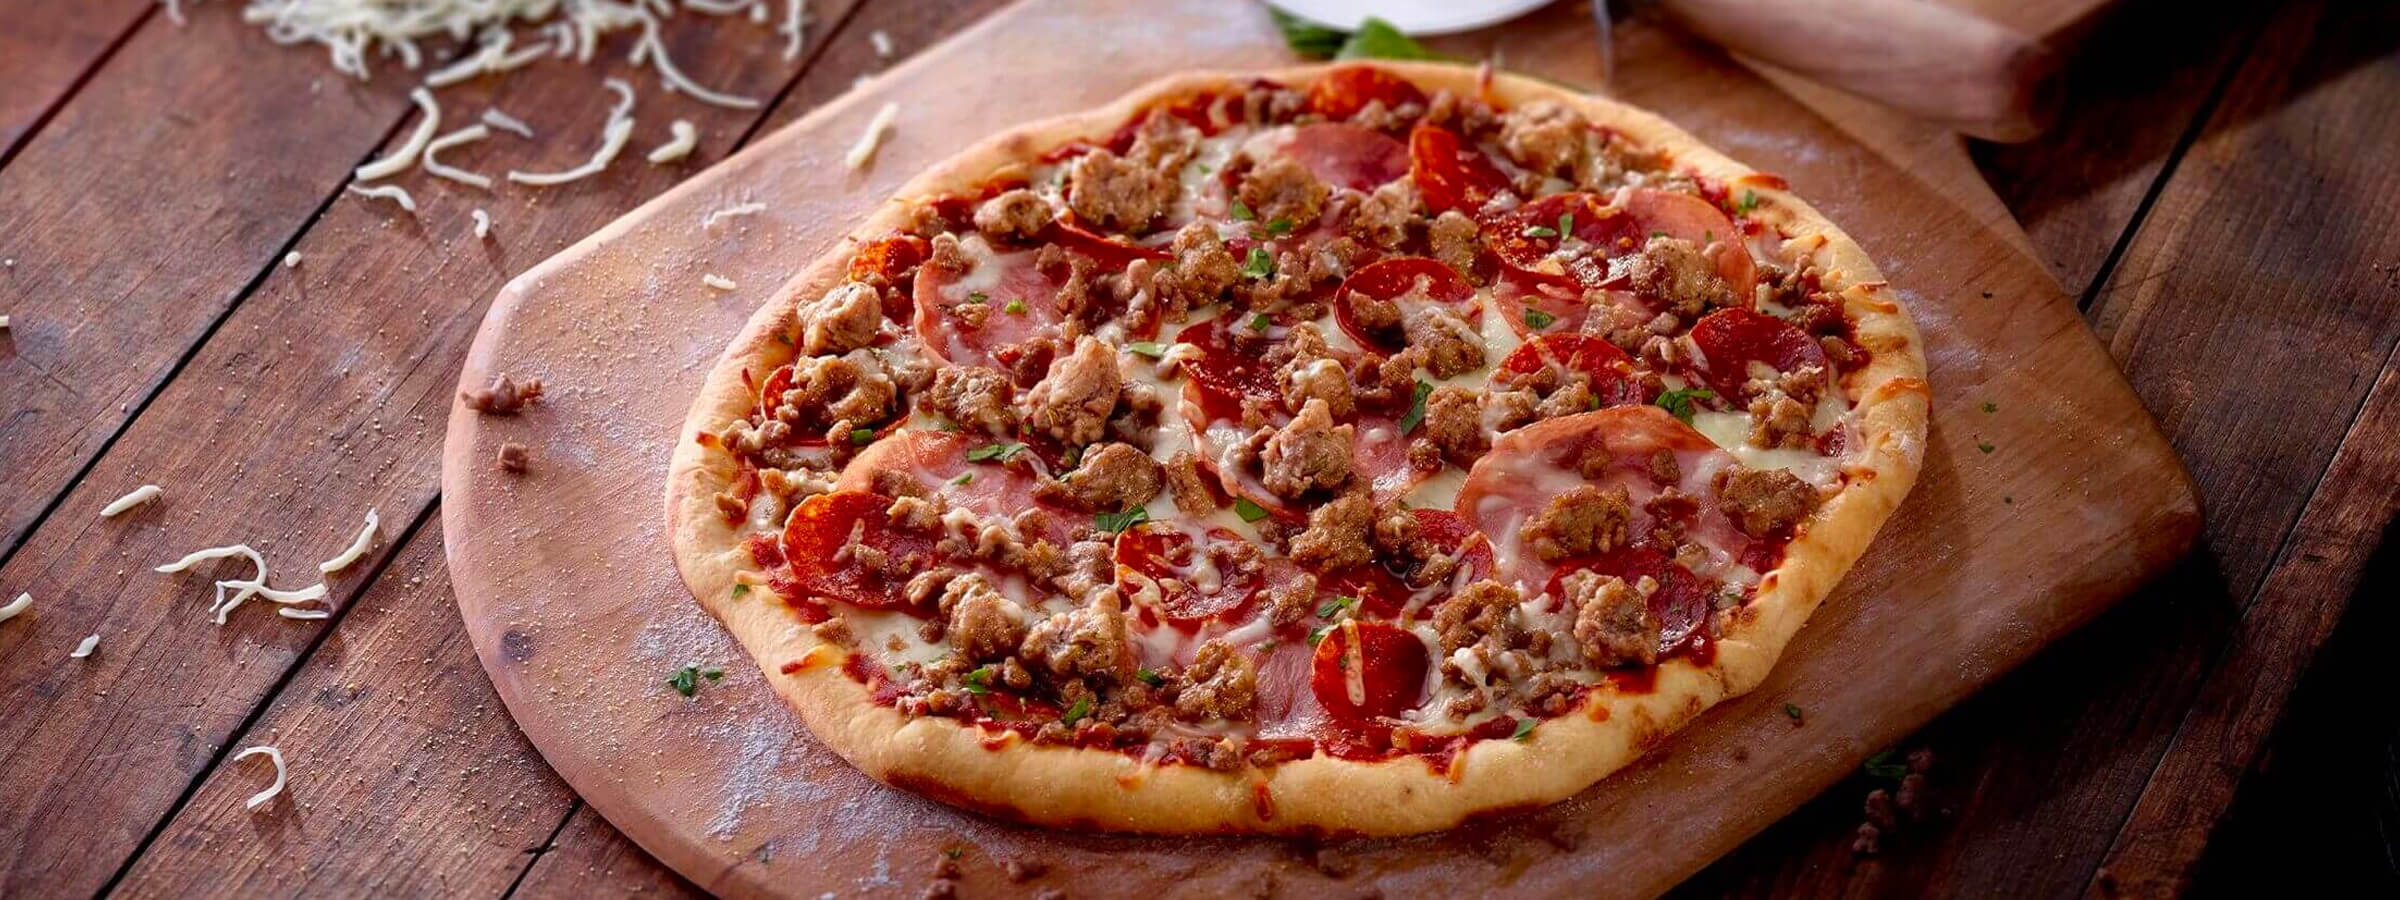 A pizza with sausage and meat